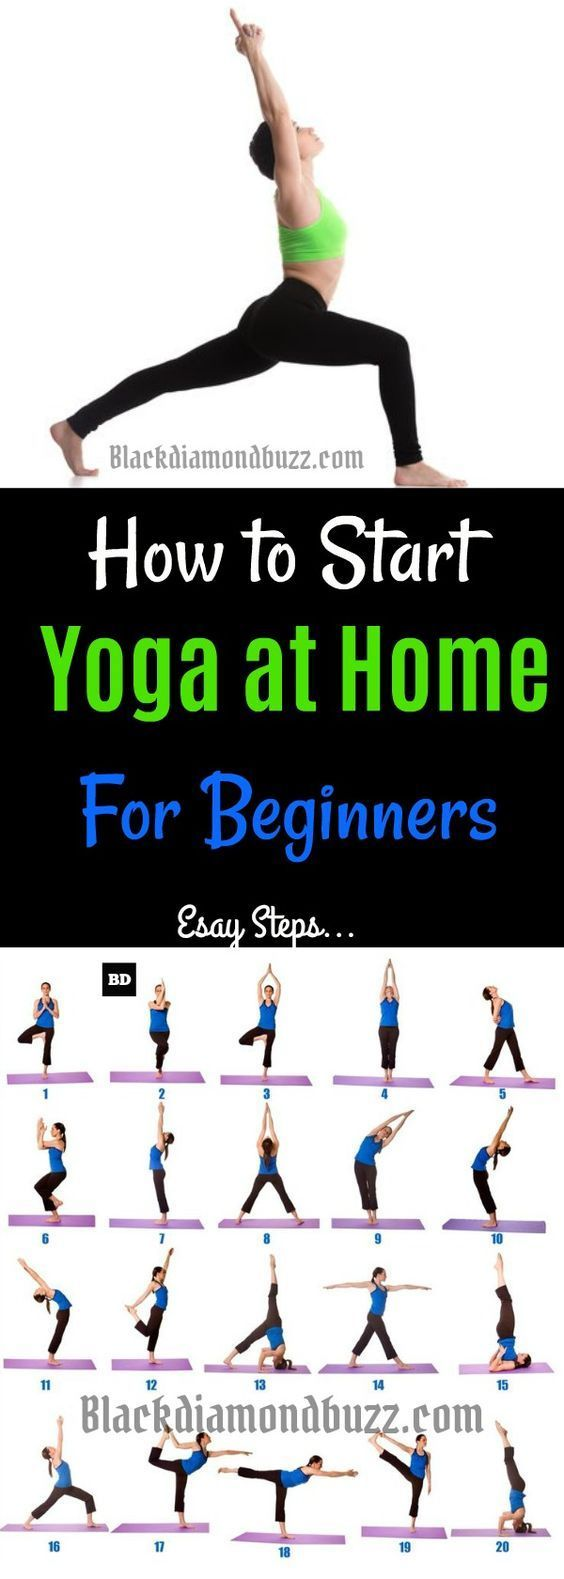 Yoga Poses 7 Easy Best For Beginners And Back Stretches